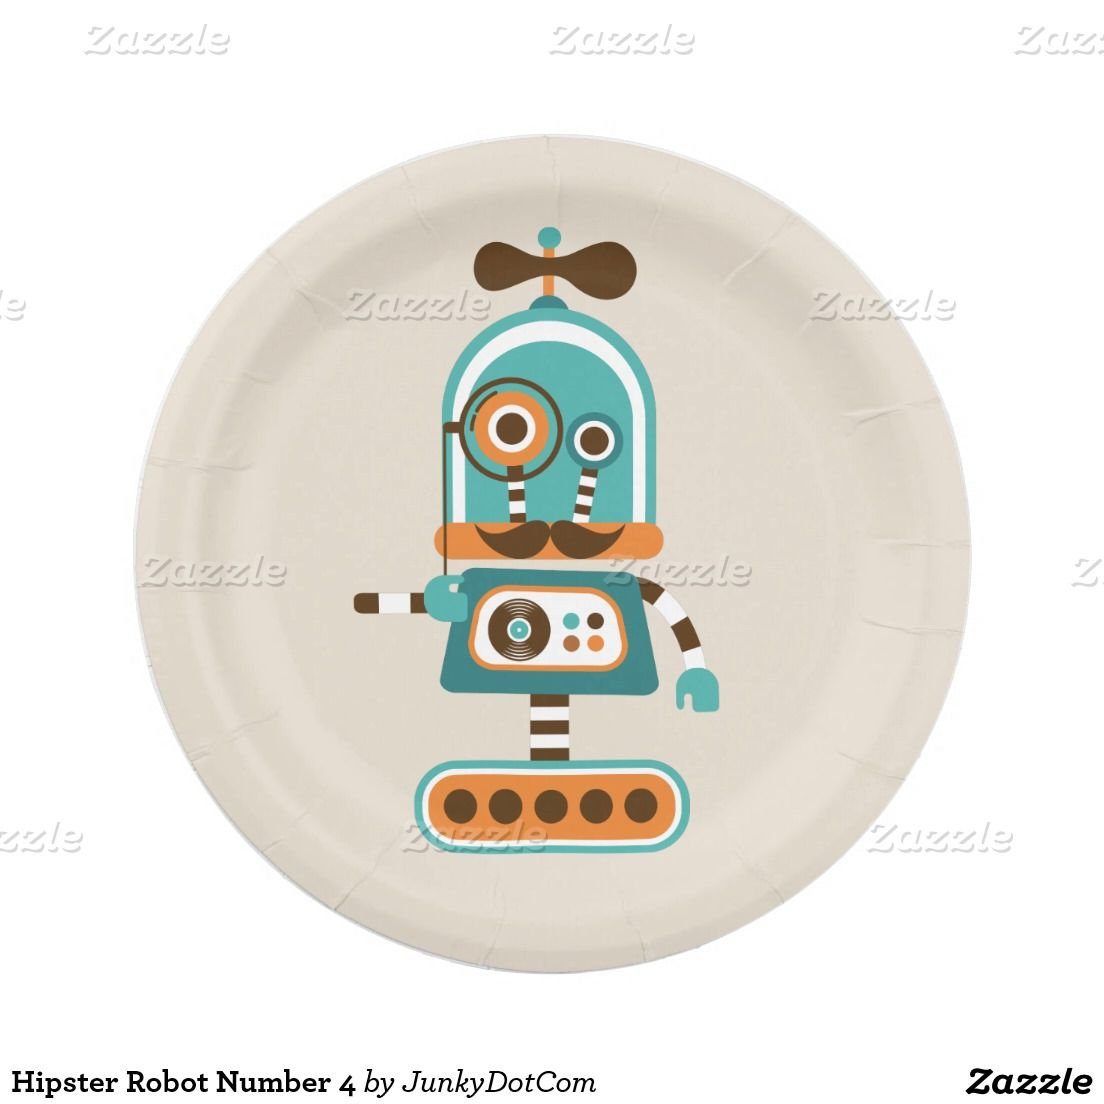 Shop Hipster Robot Number 4 Paper Plate created by JunkyDotCom.  sc 1 st  Pinterest & Hipster Robot Number 4 7 Inch Paper Plate - Feb 15 - 32x | 2016 Best ...